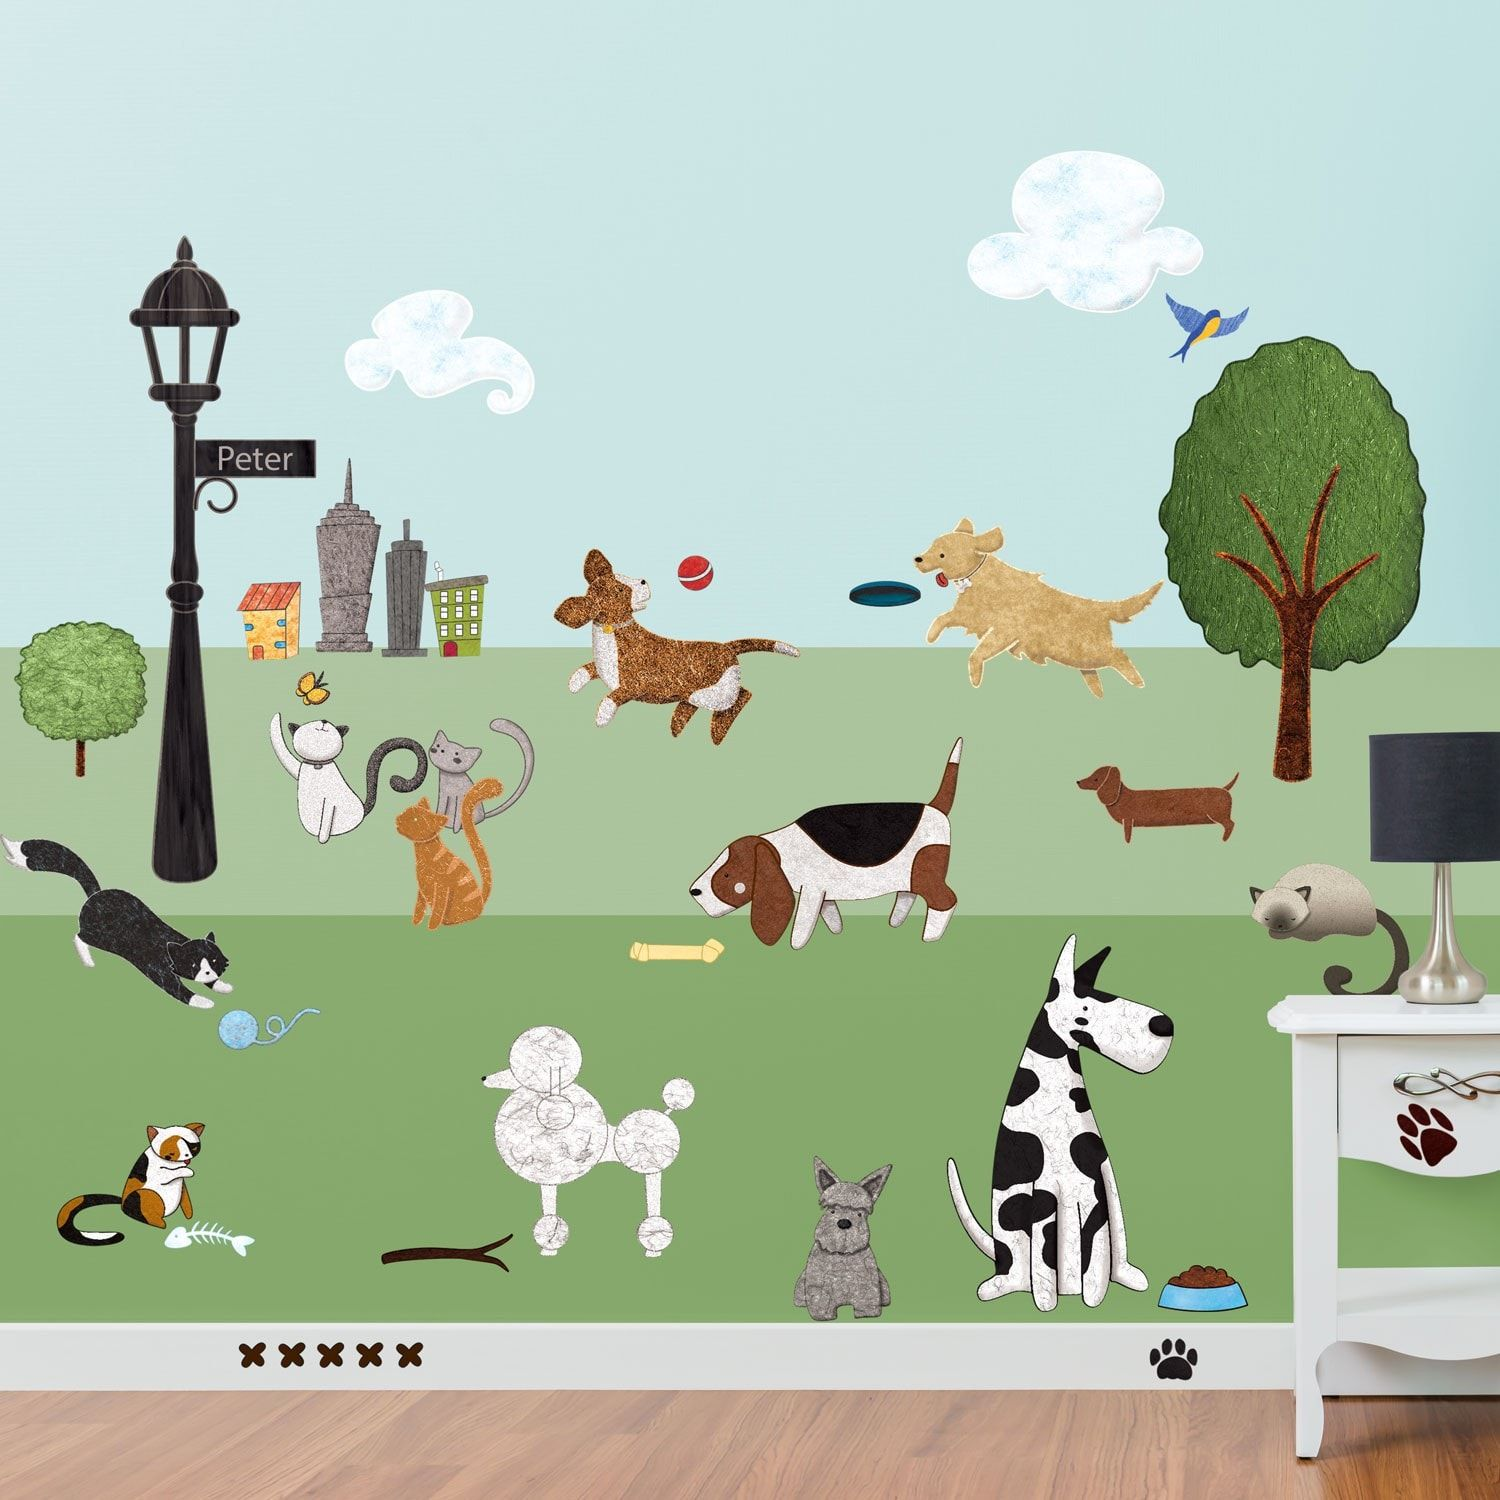 Dog Wallpaper For Walls paws park cat and dog wall sticker decal kit - jumbo set